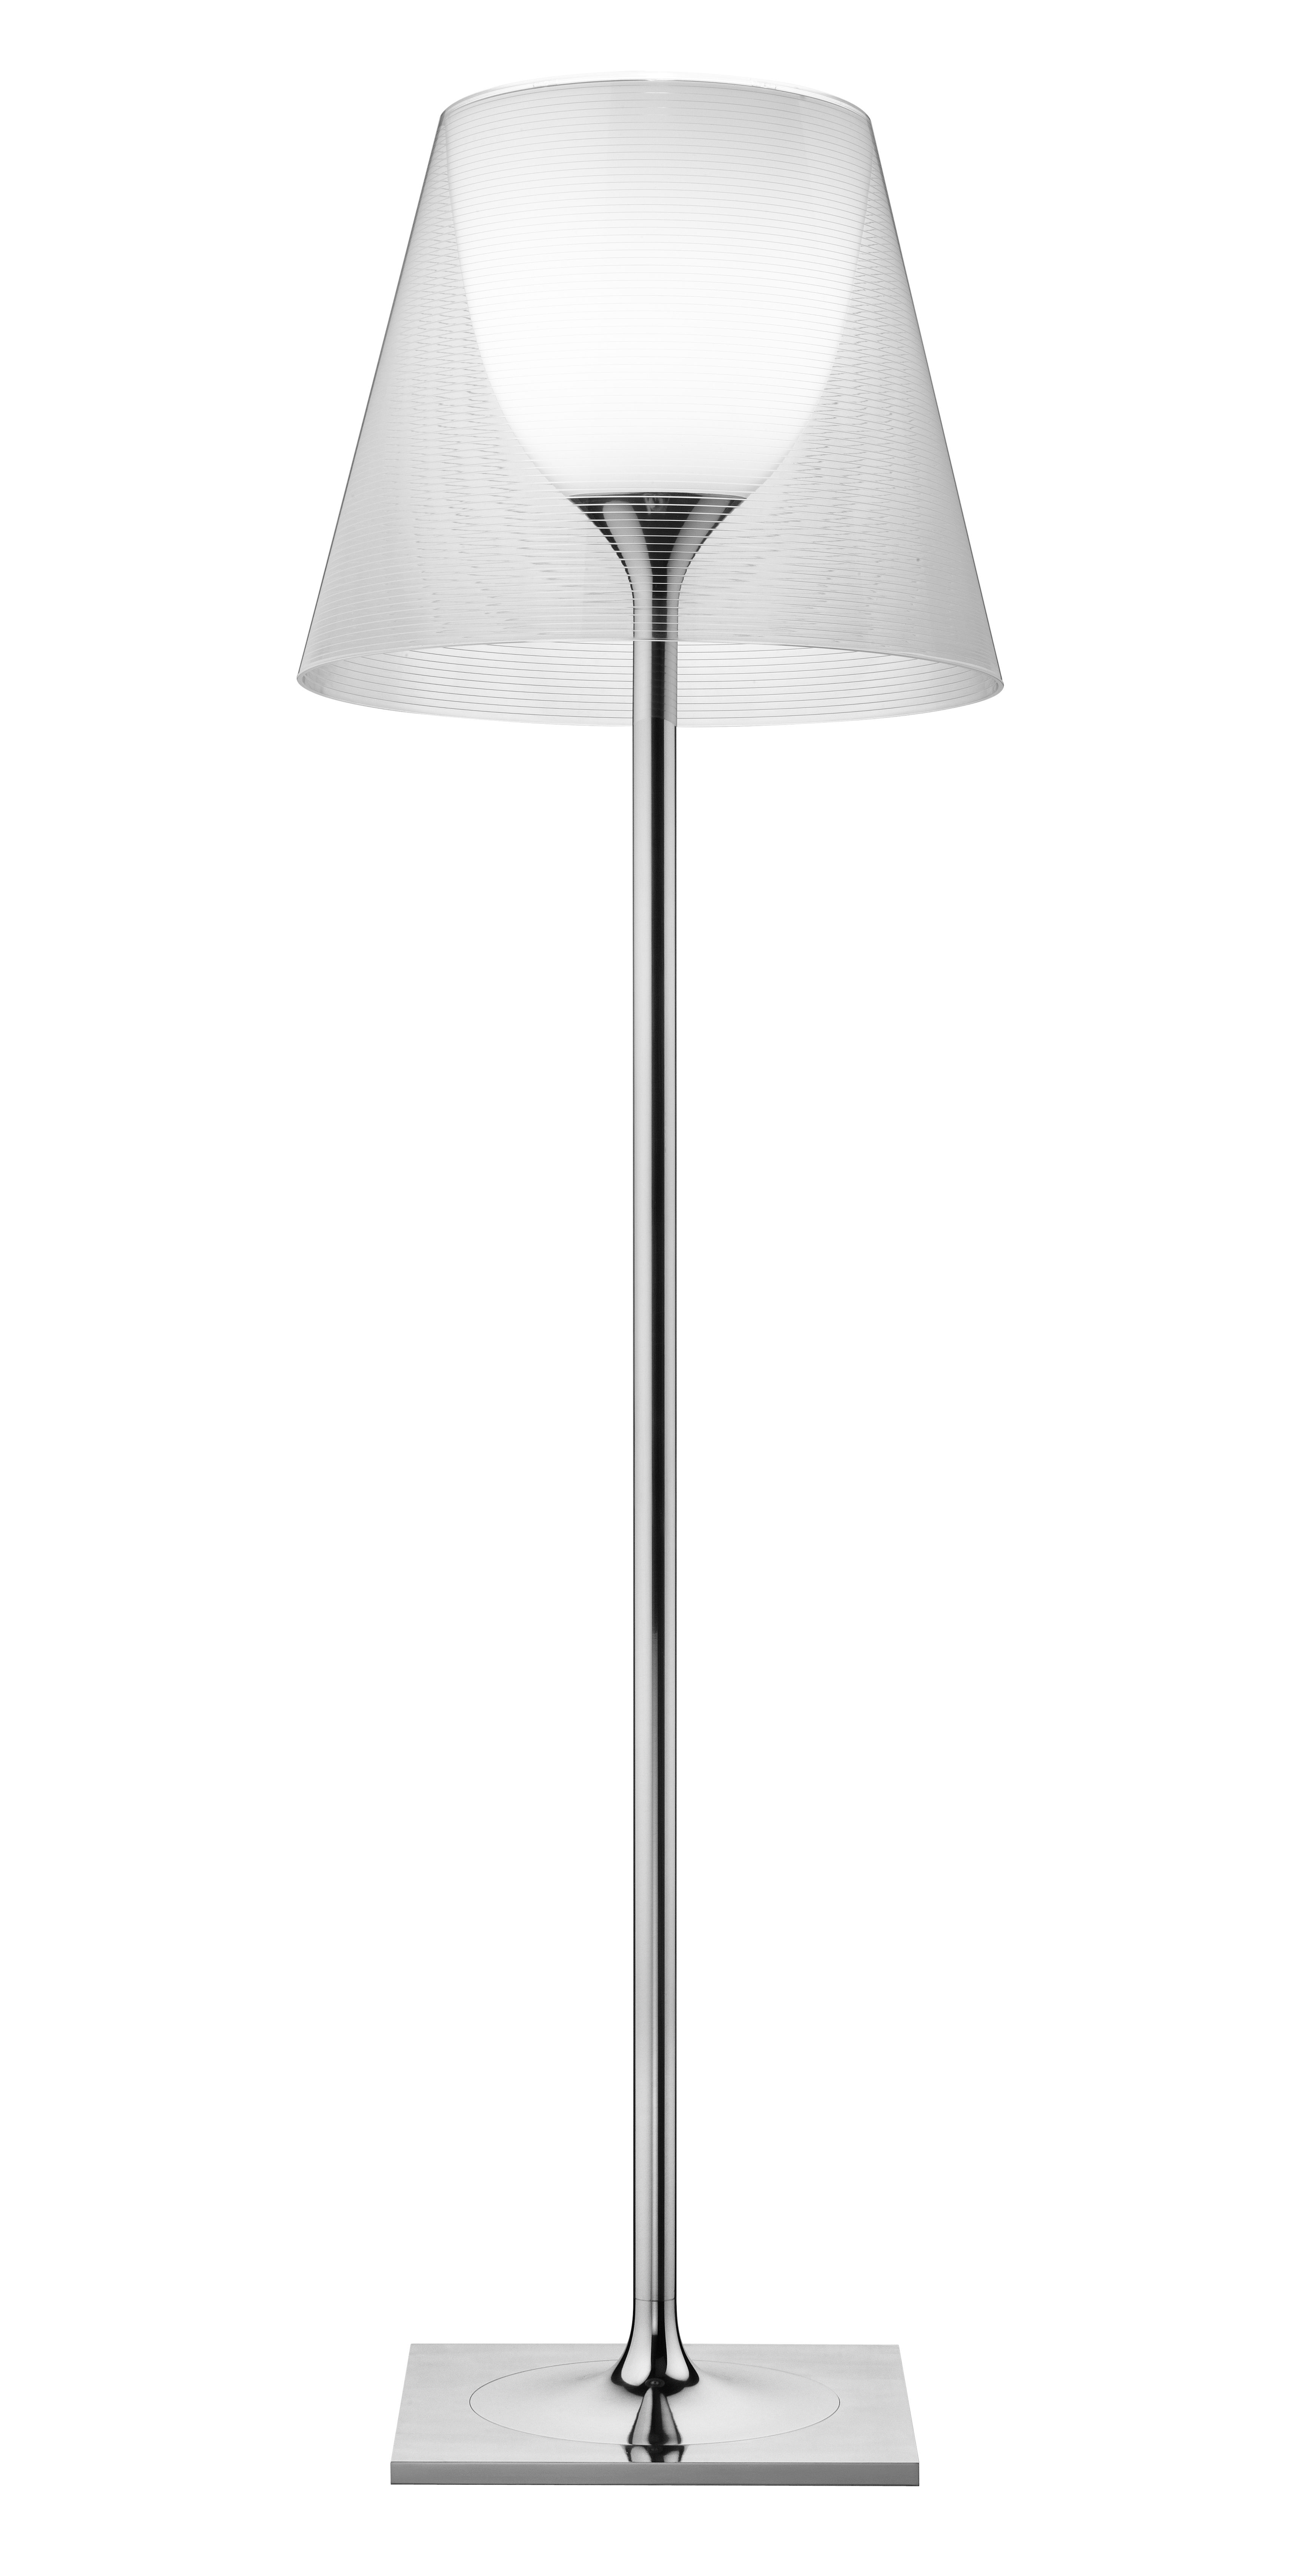 Lighting - Floor lamps - K Tribe F3 Floor lamp - H 183 cm by Flos - Transparent - PMMA, Polished aluminium